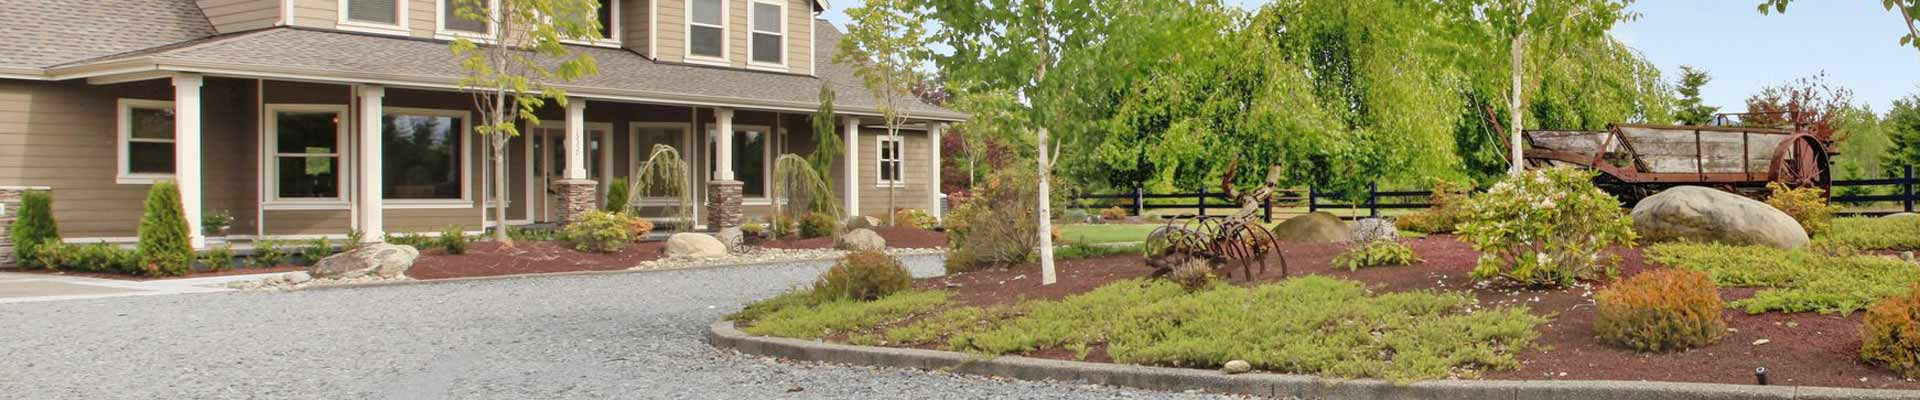 Driveway gravel and rock installation Charleston by All Seasons Mulch